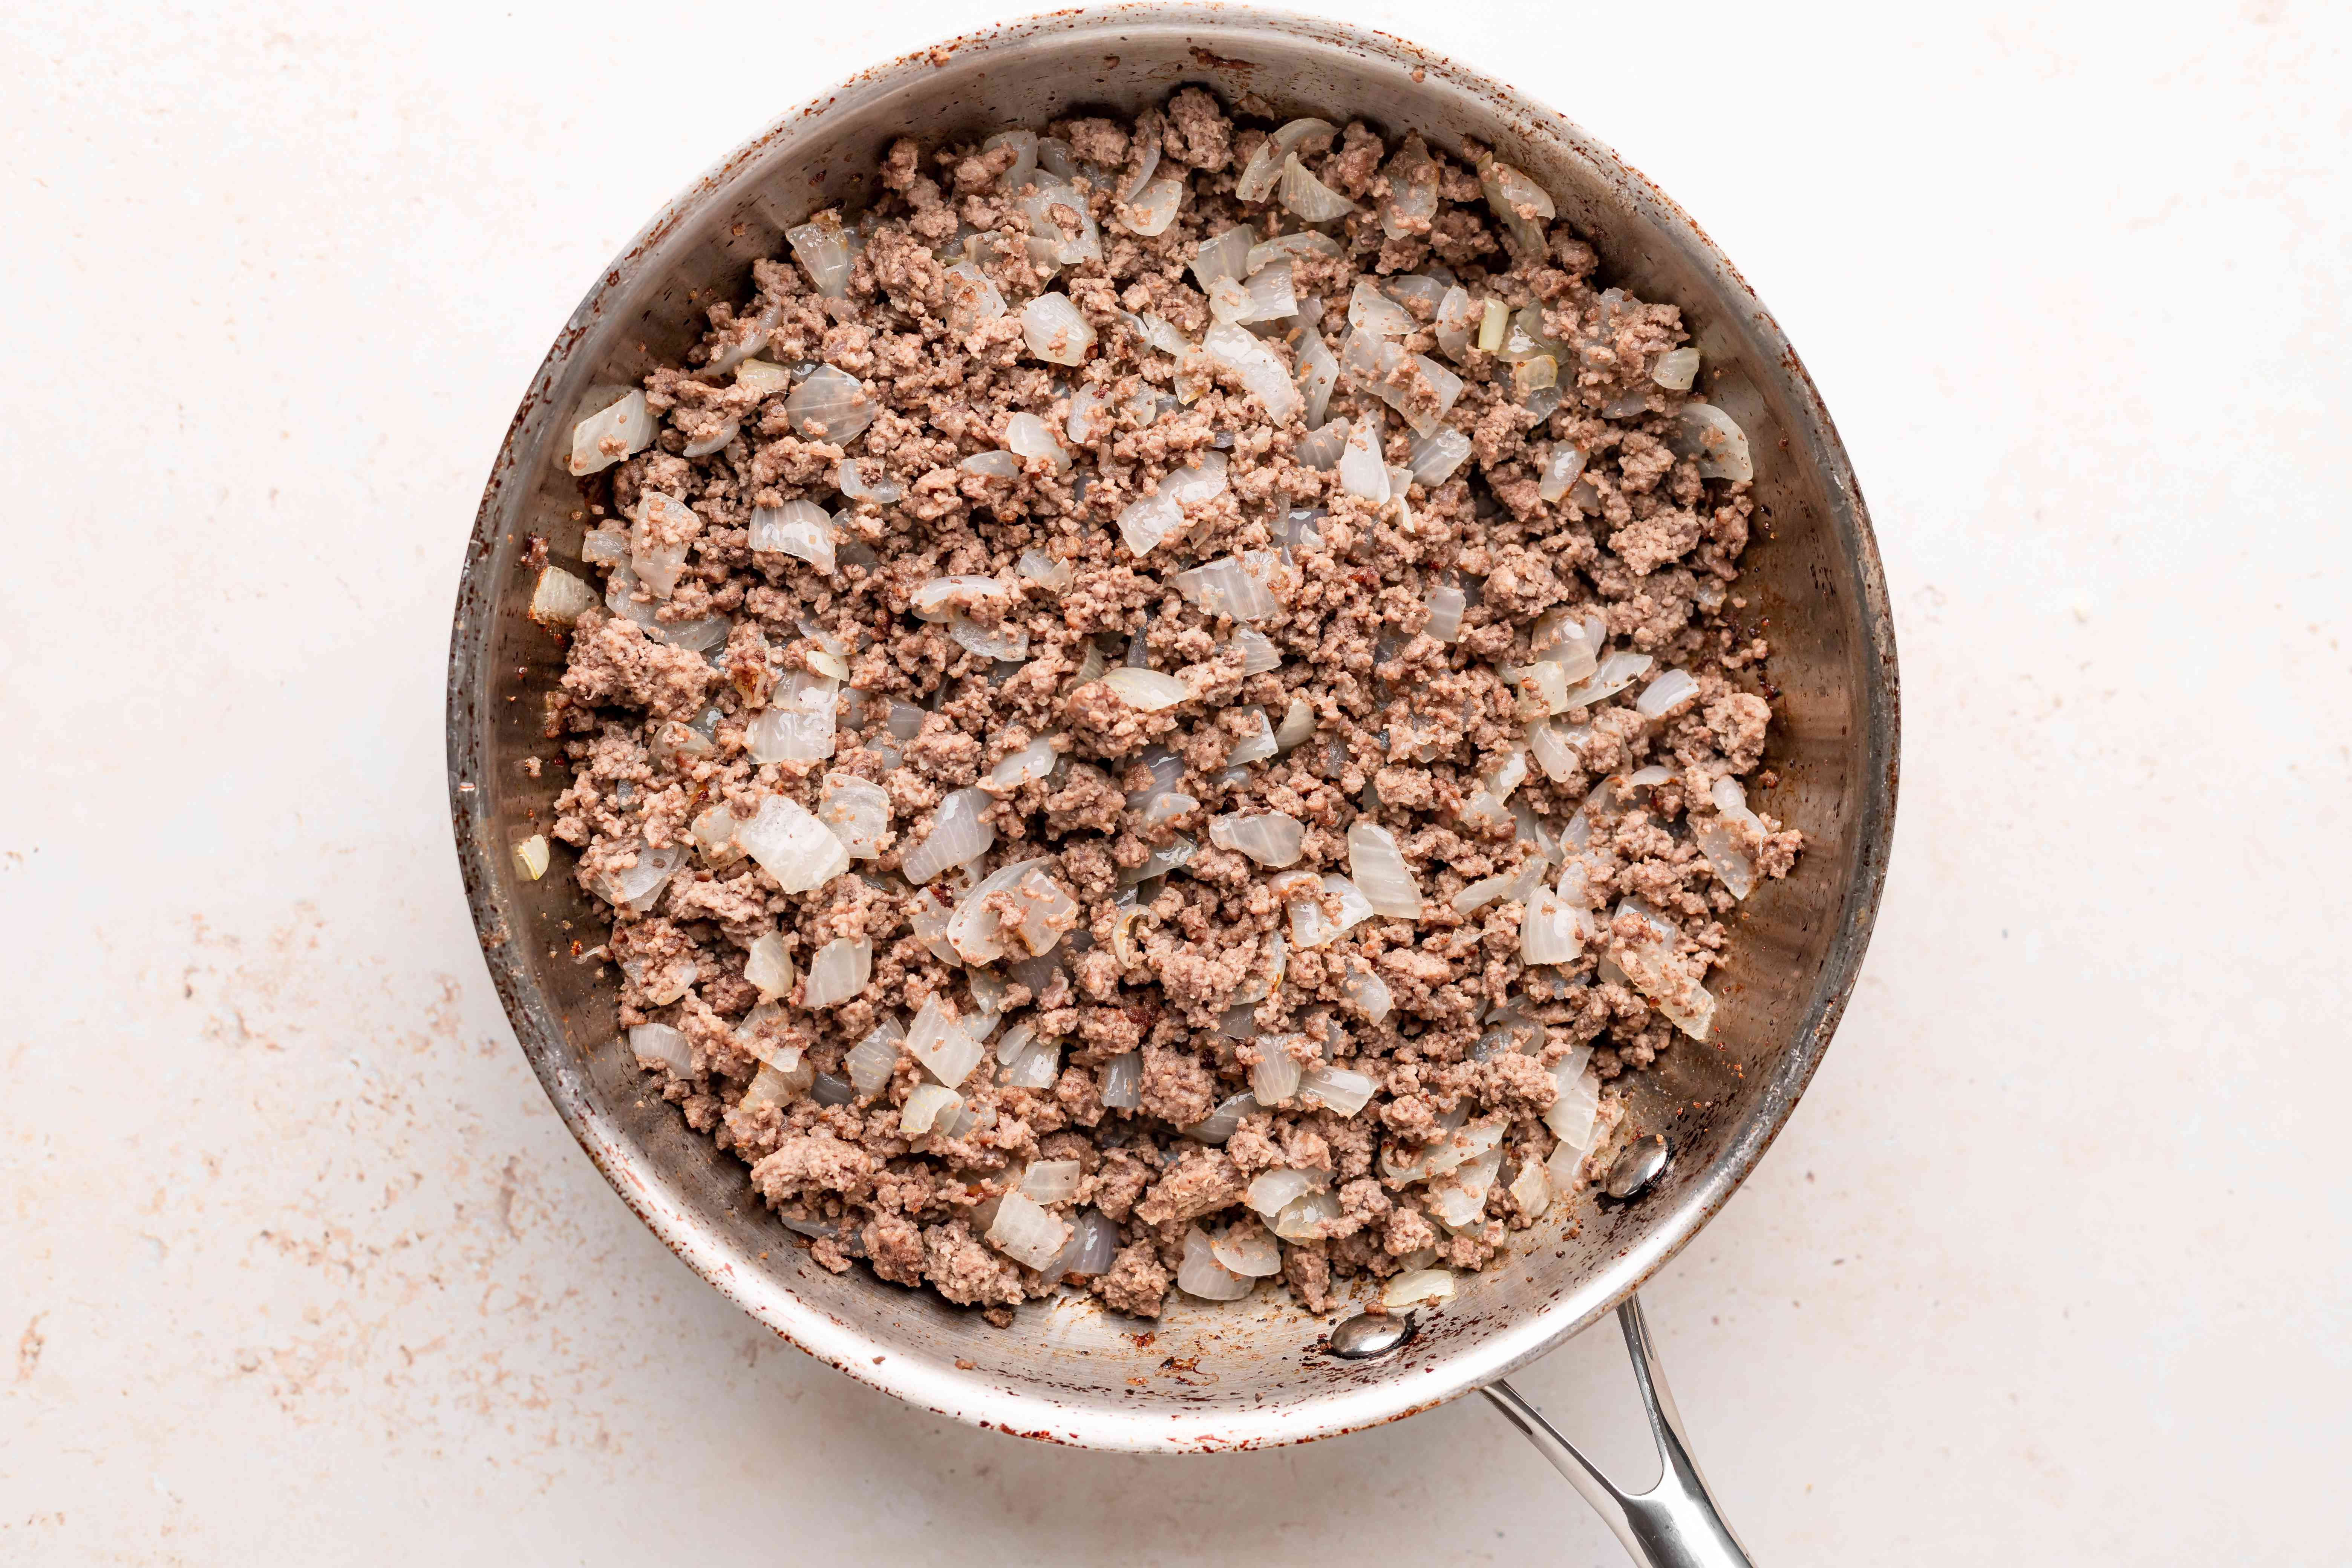 Browned beef for a baked ziti recipe.